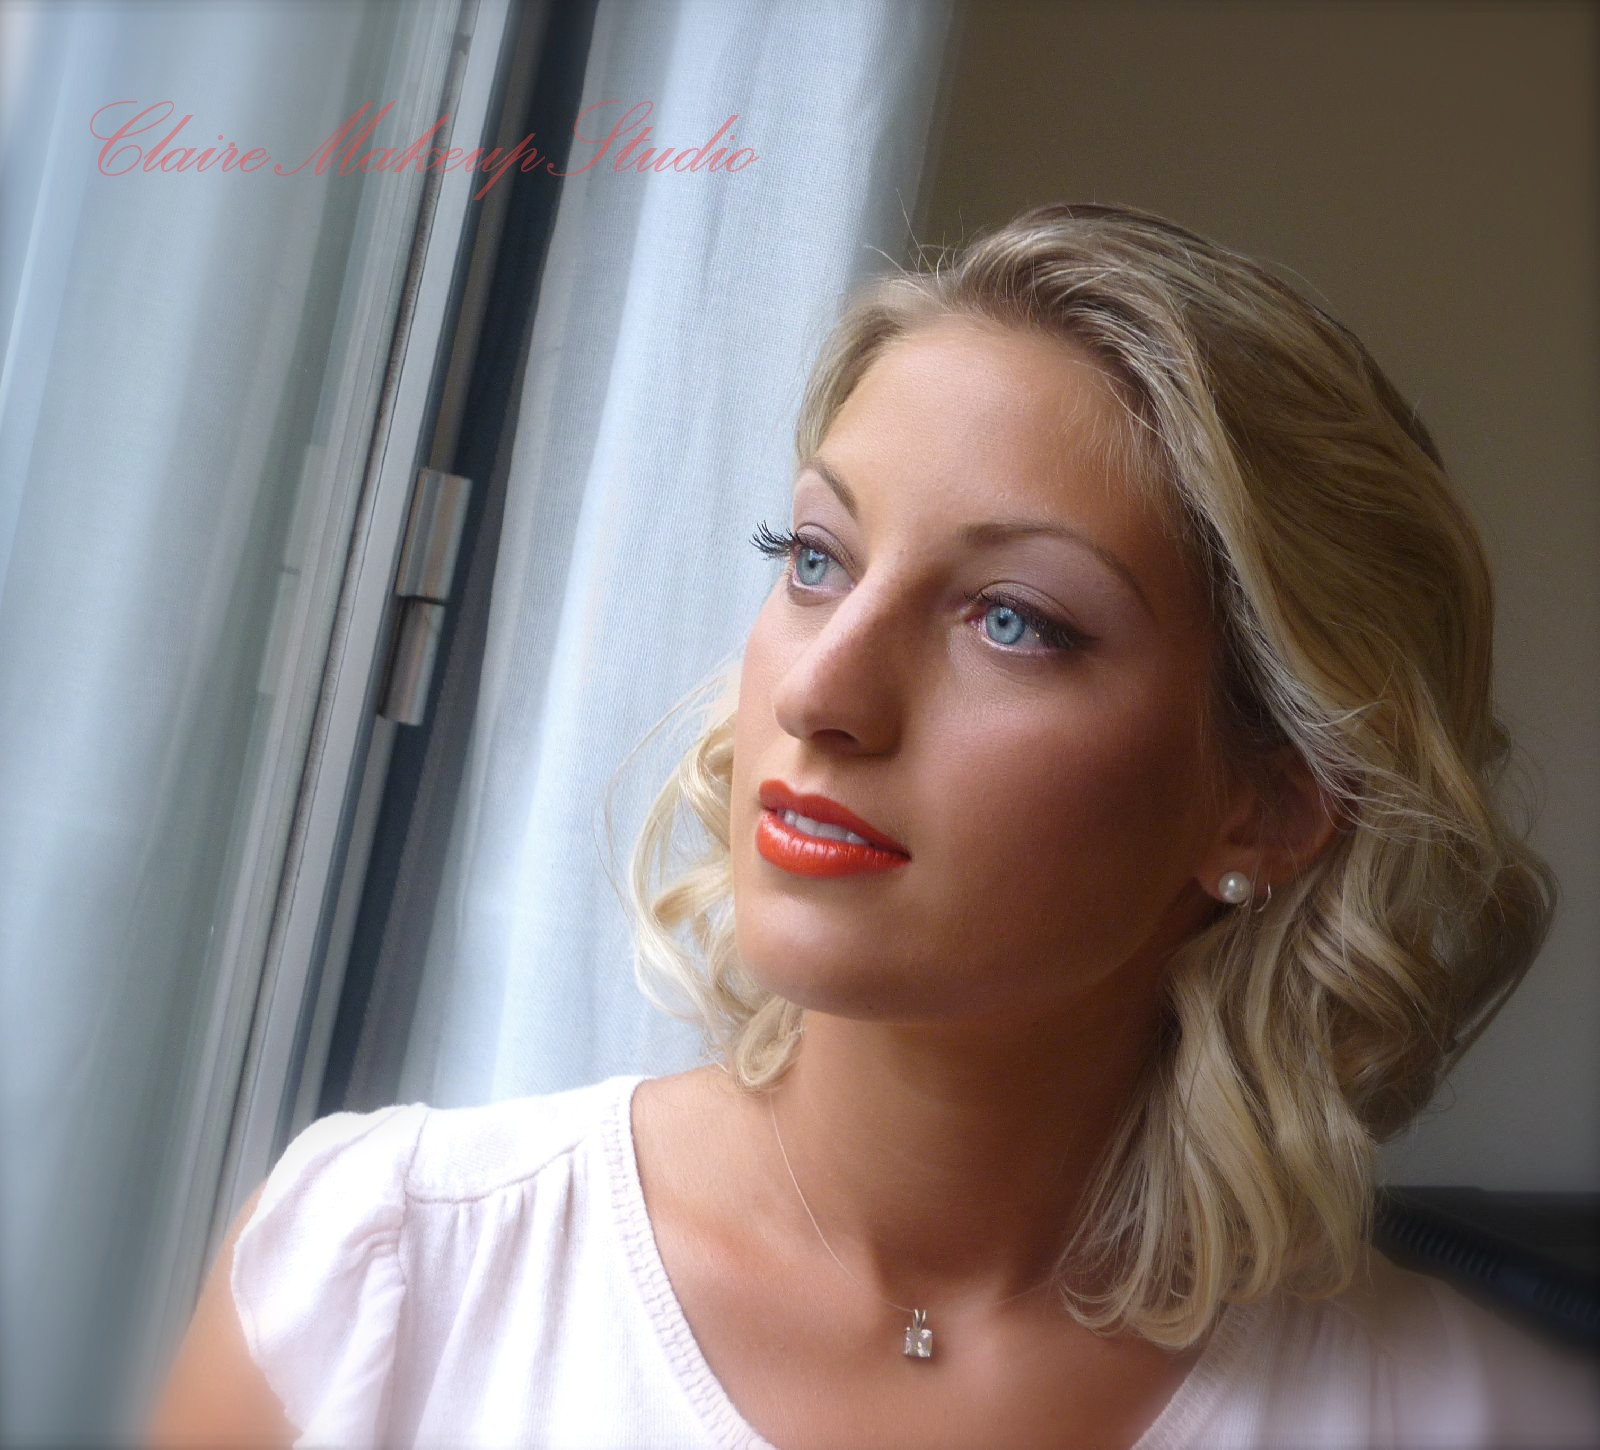 Clairemakeupstudio beauty icon grace kelly inspired make up here is the tutorial for it baditri Images